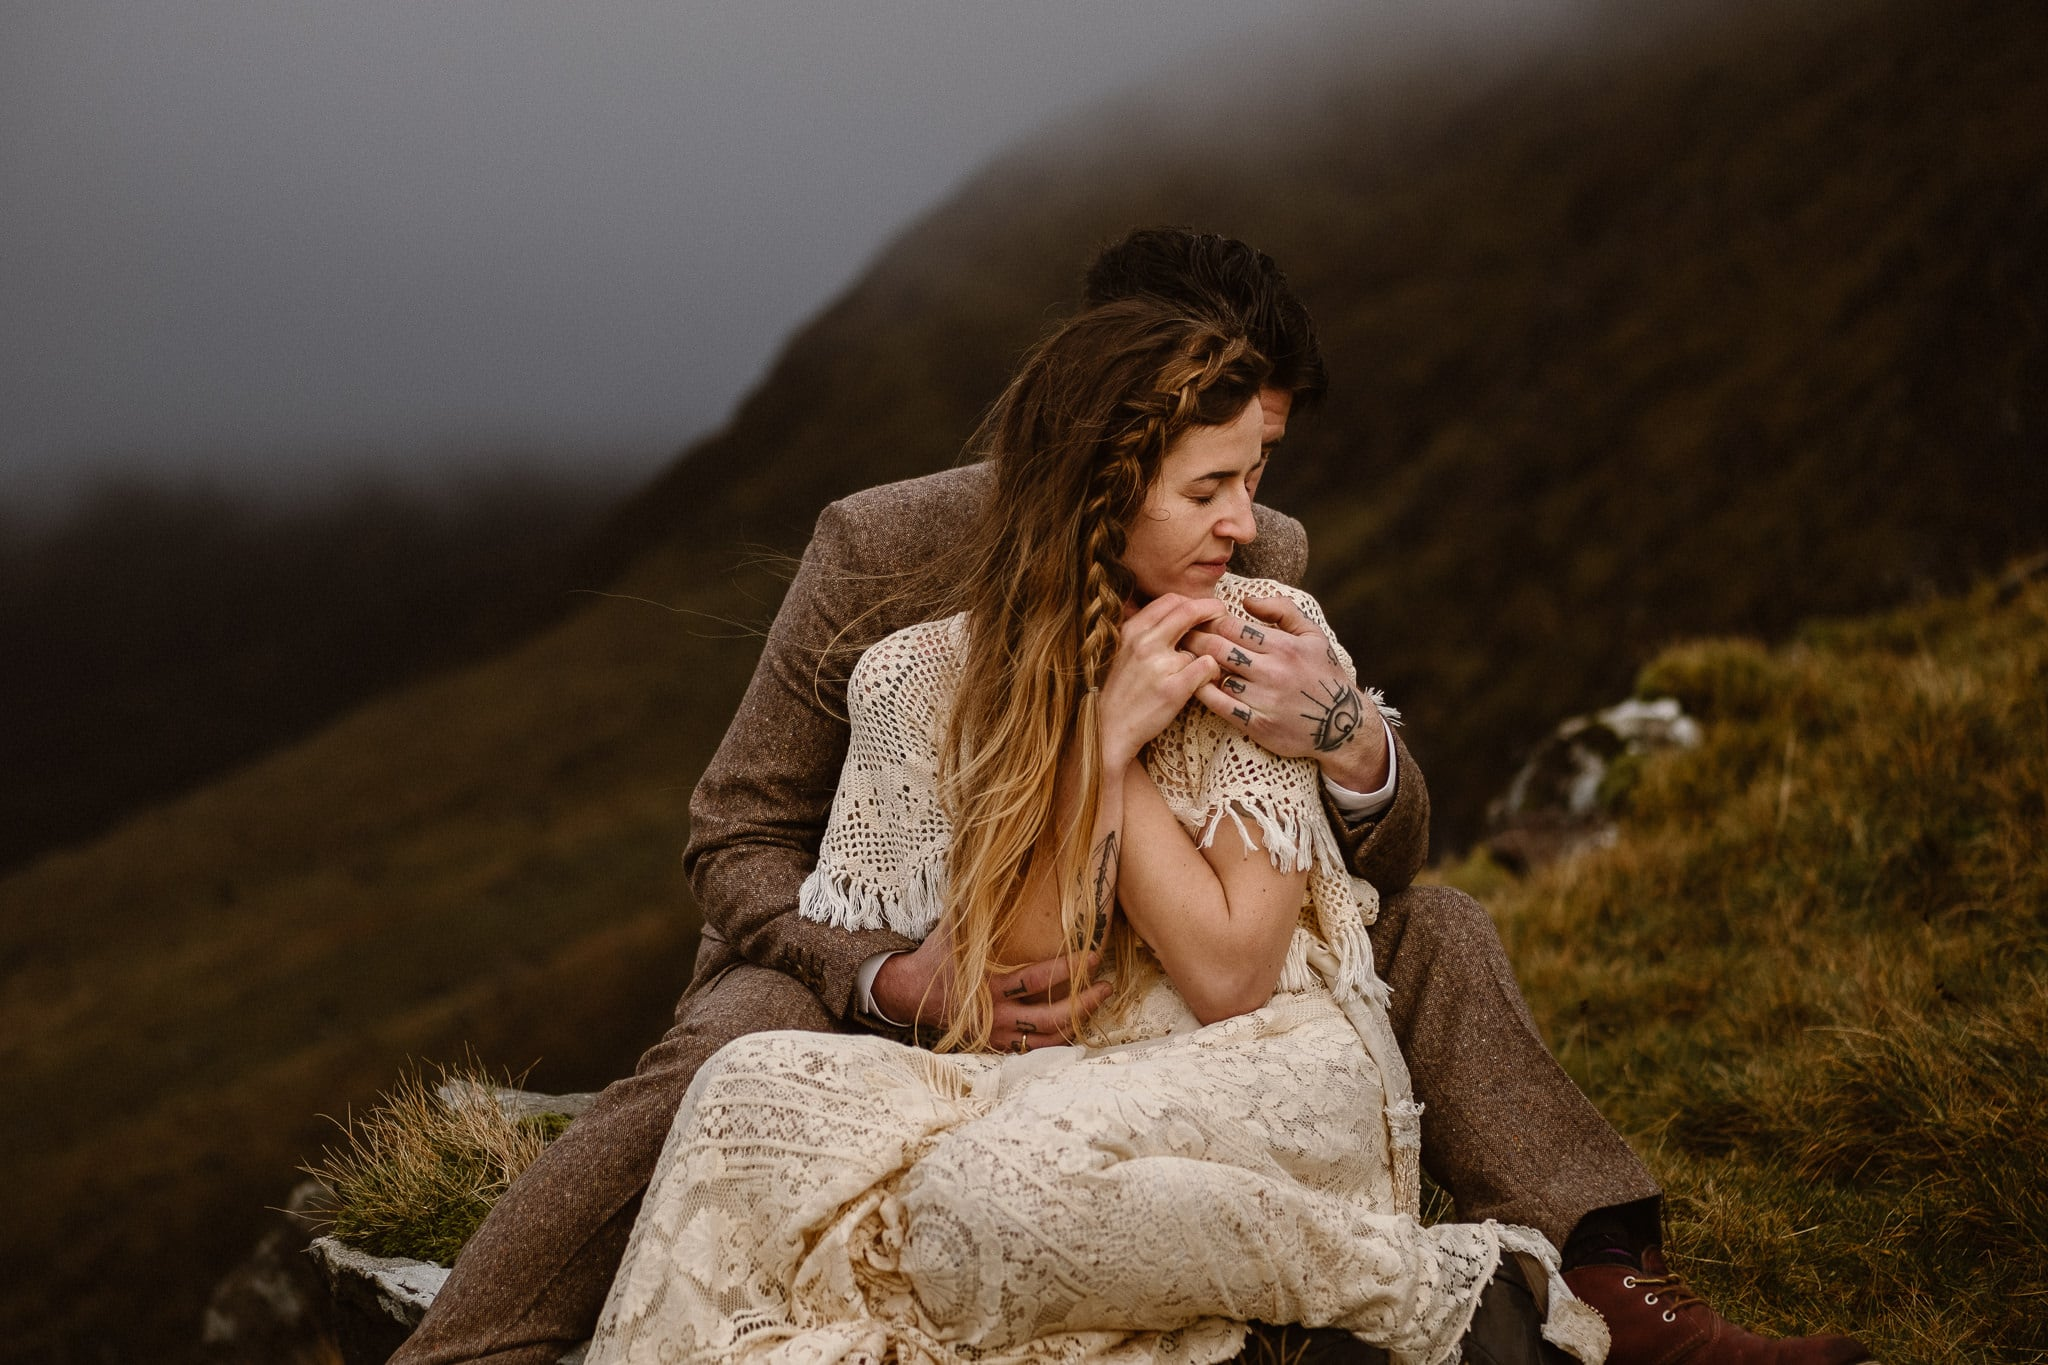 Ireland elopement photographer, Conor Pass adventure elopement, Ireland destination wedding photographer, adventure wedding photographer, hiking elopement, bride wearing Reclamation wedding dress